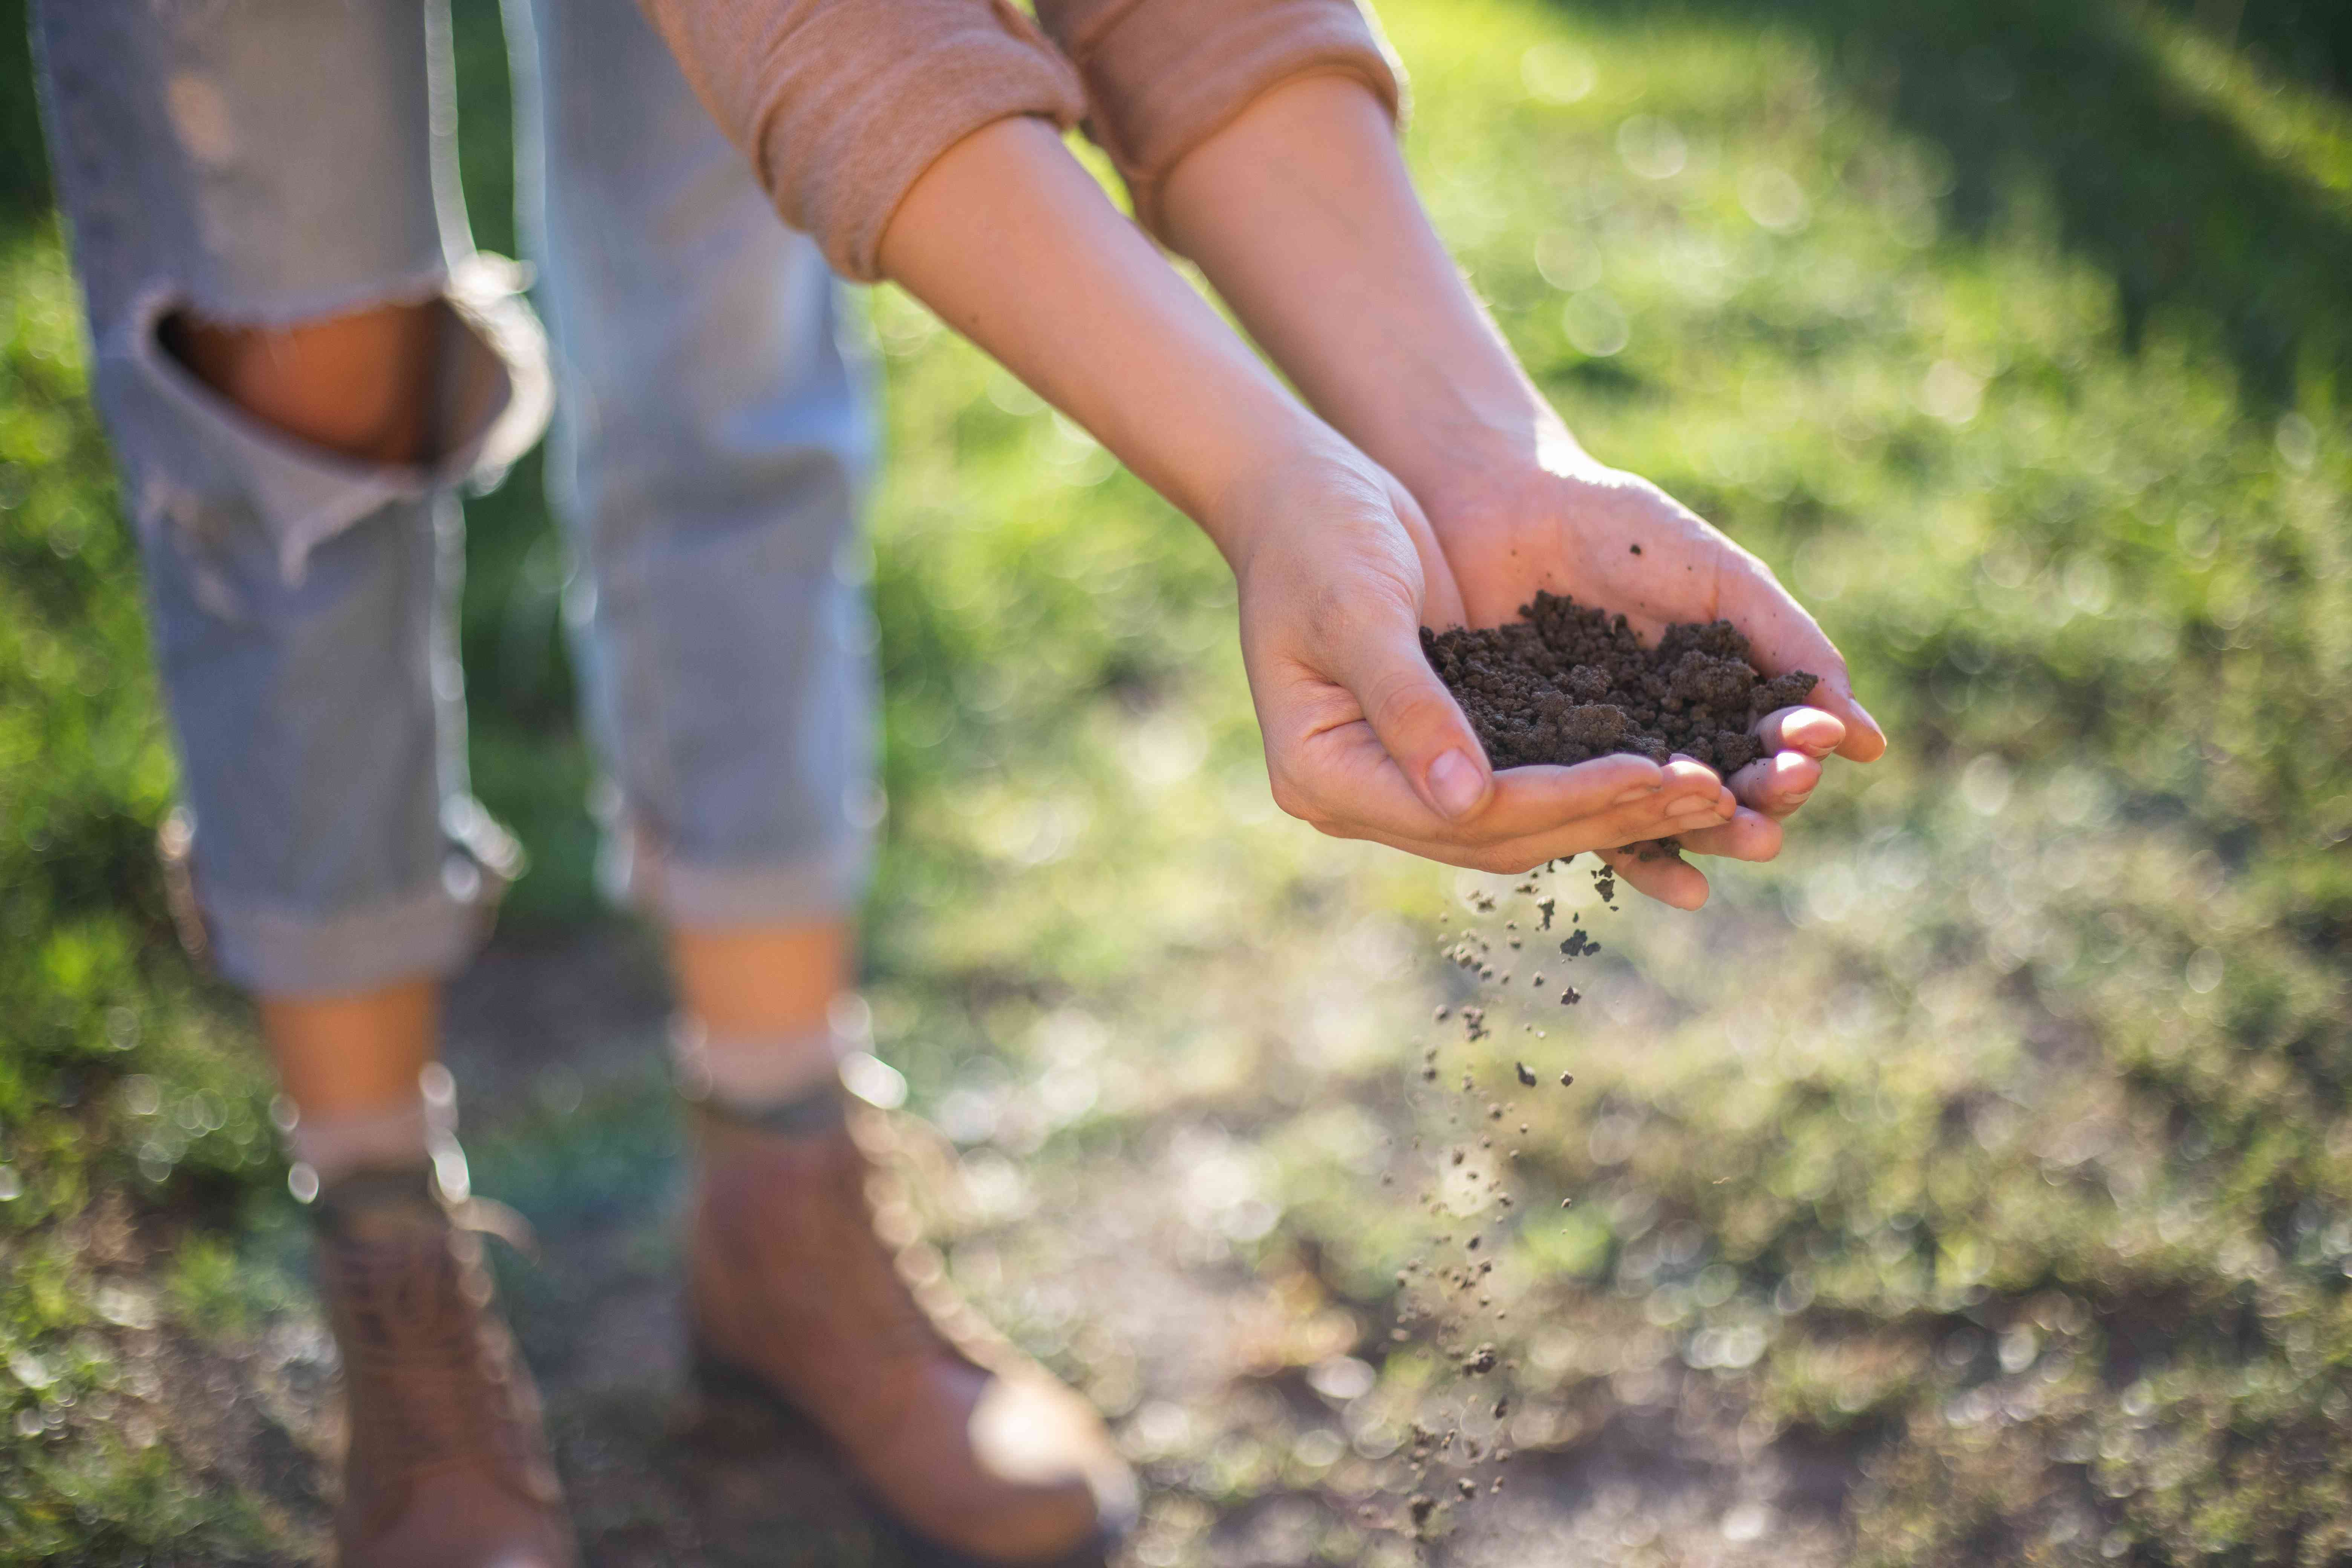 woman in torn jeans holds black compost soil in cupped hands outside